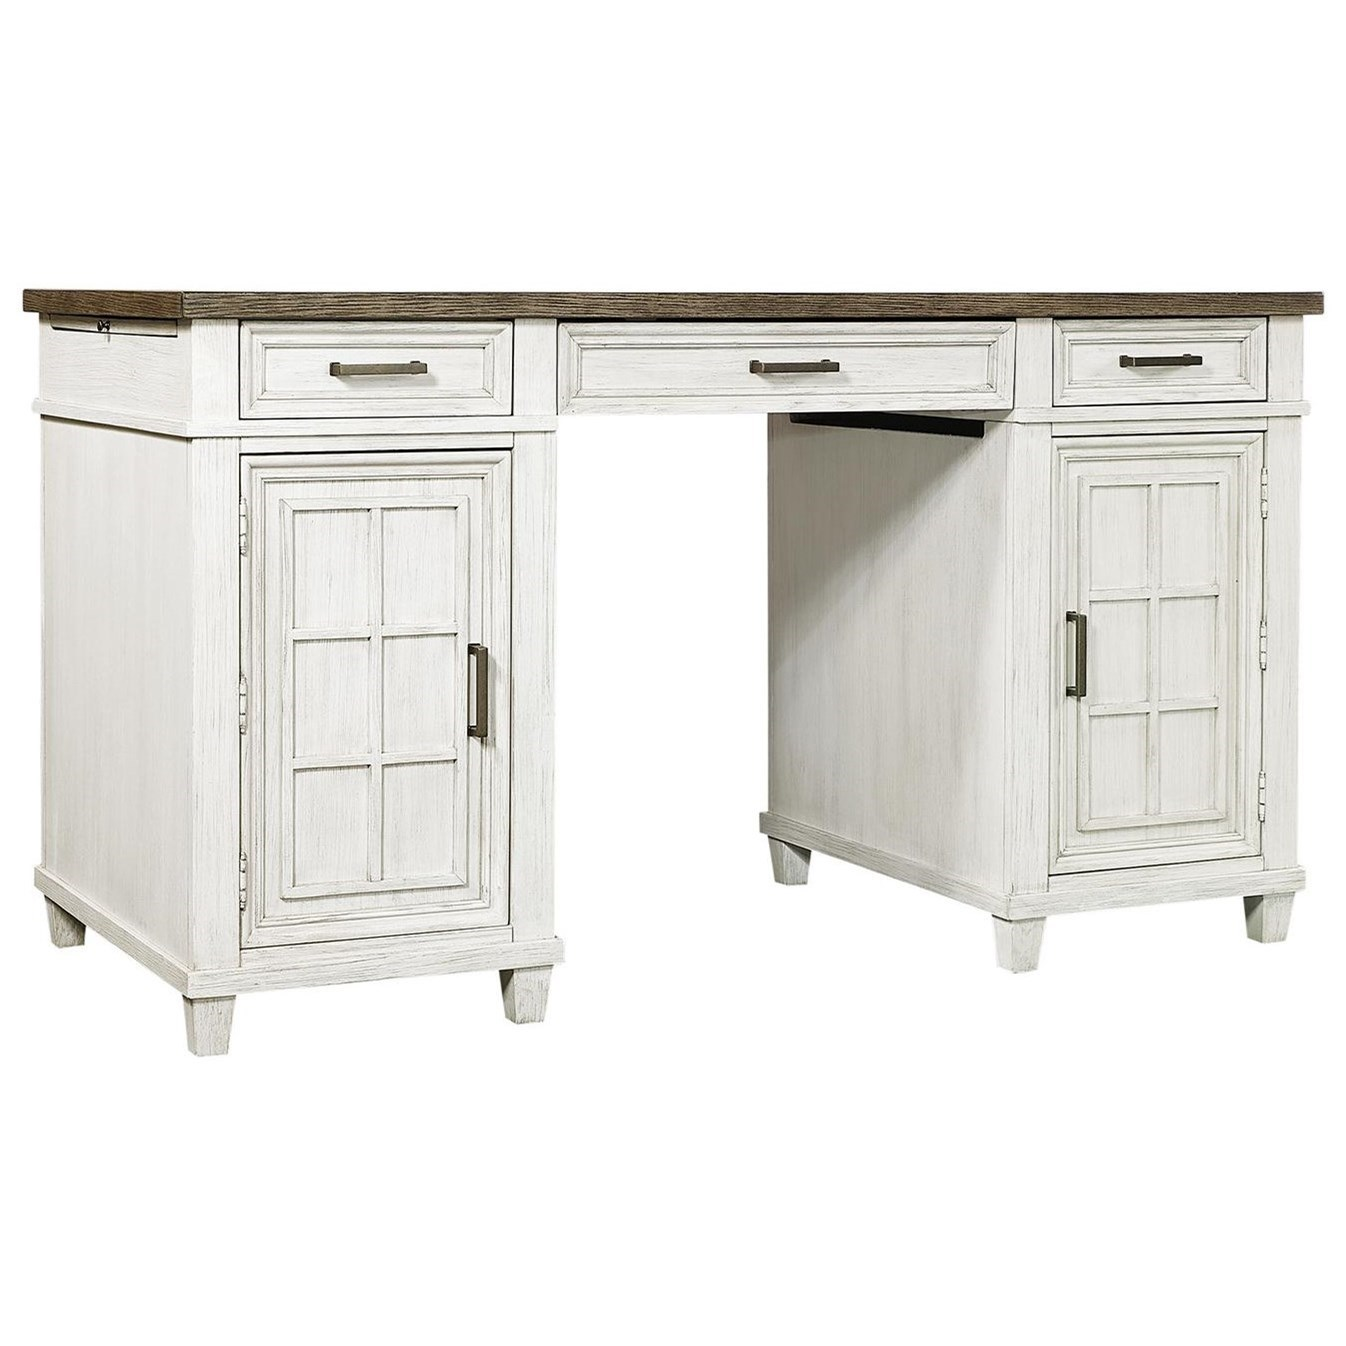 Eileen Crafting Desk by Aspenhome at Crowley Furniture & Mattress